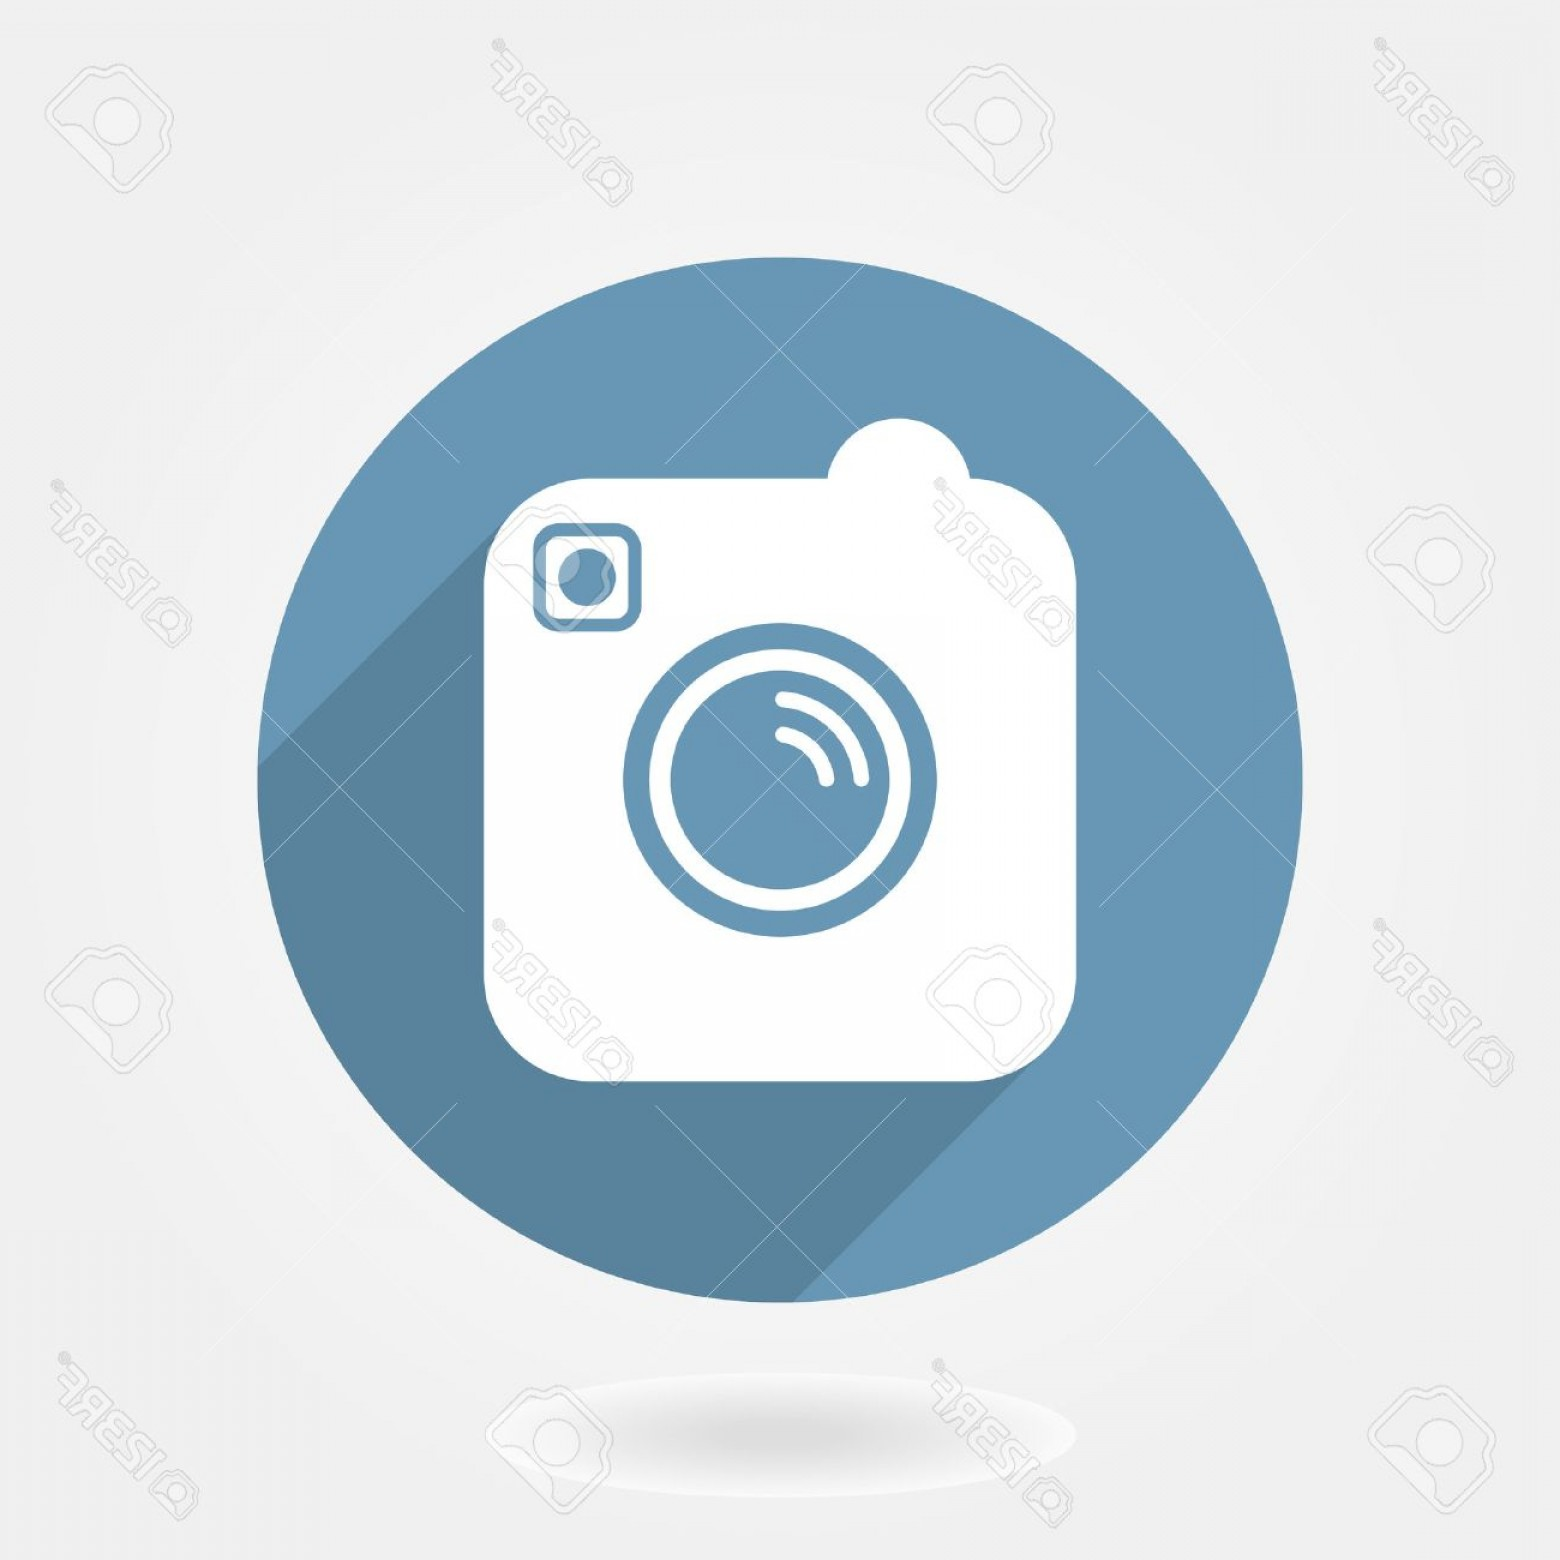 Instagram App Icon Vector: Photostock Vector Camera Like Instagram Icon With Flat Design In Blue Circle With Long Shaddow